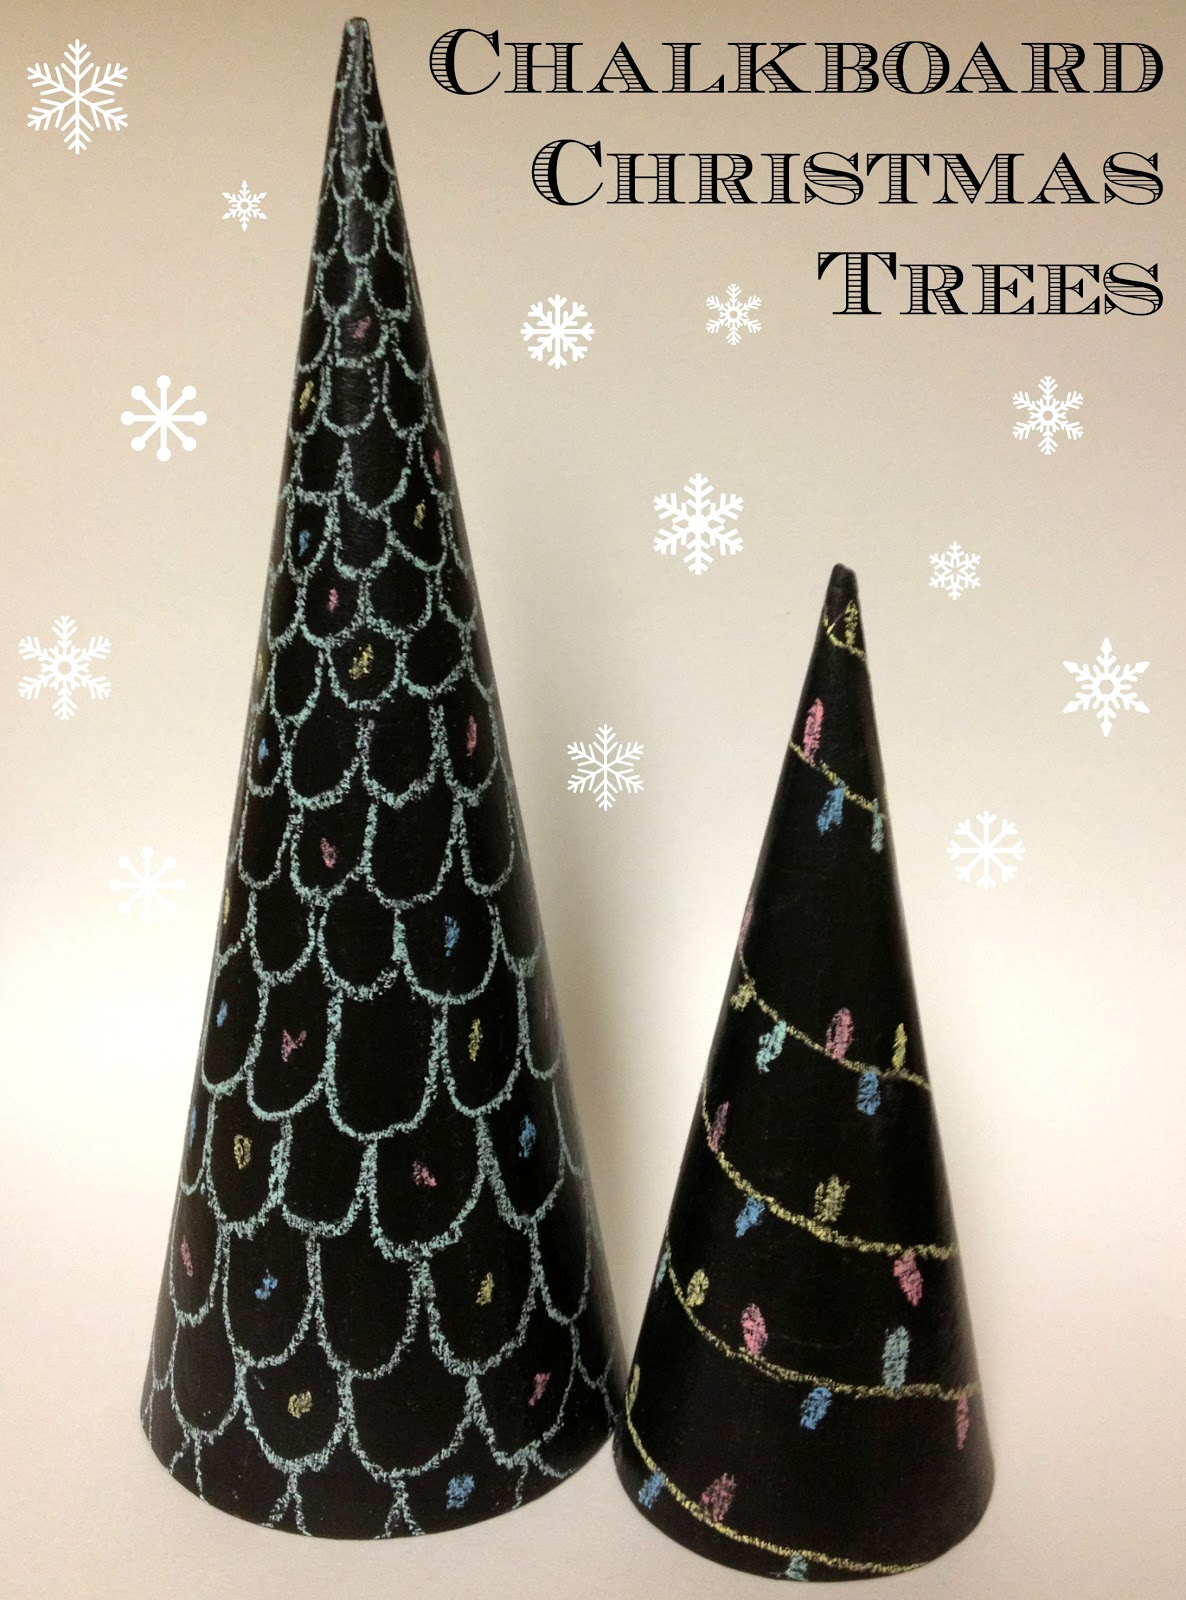 Christmas Tree with Lauren – Chalkboard Christmas Trees